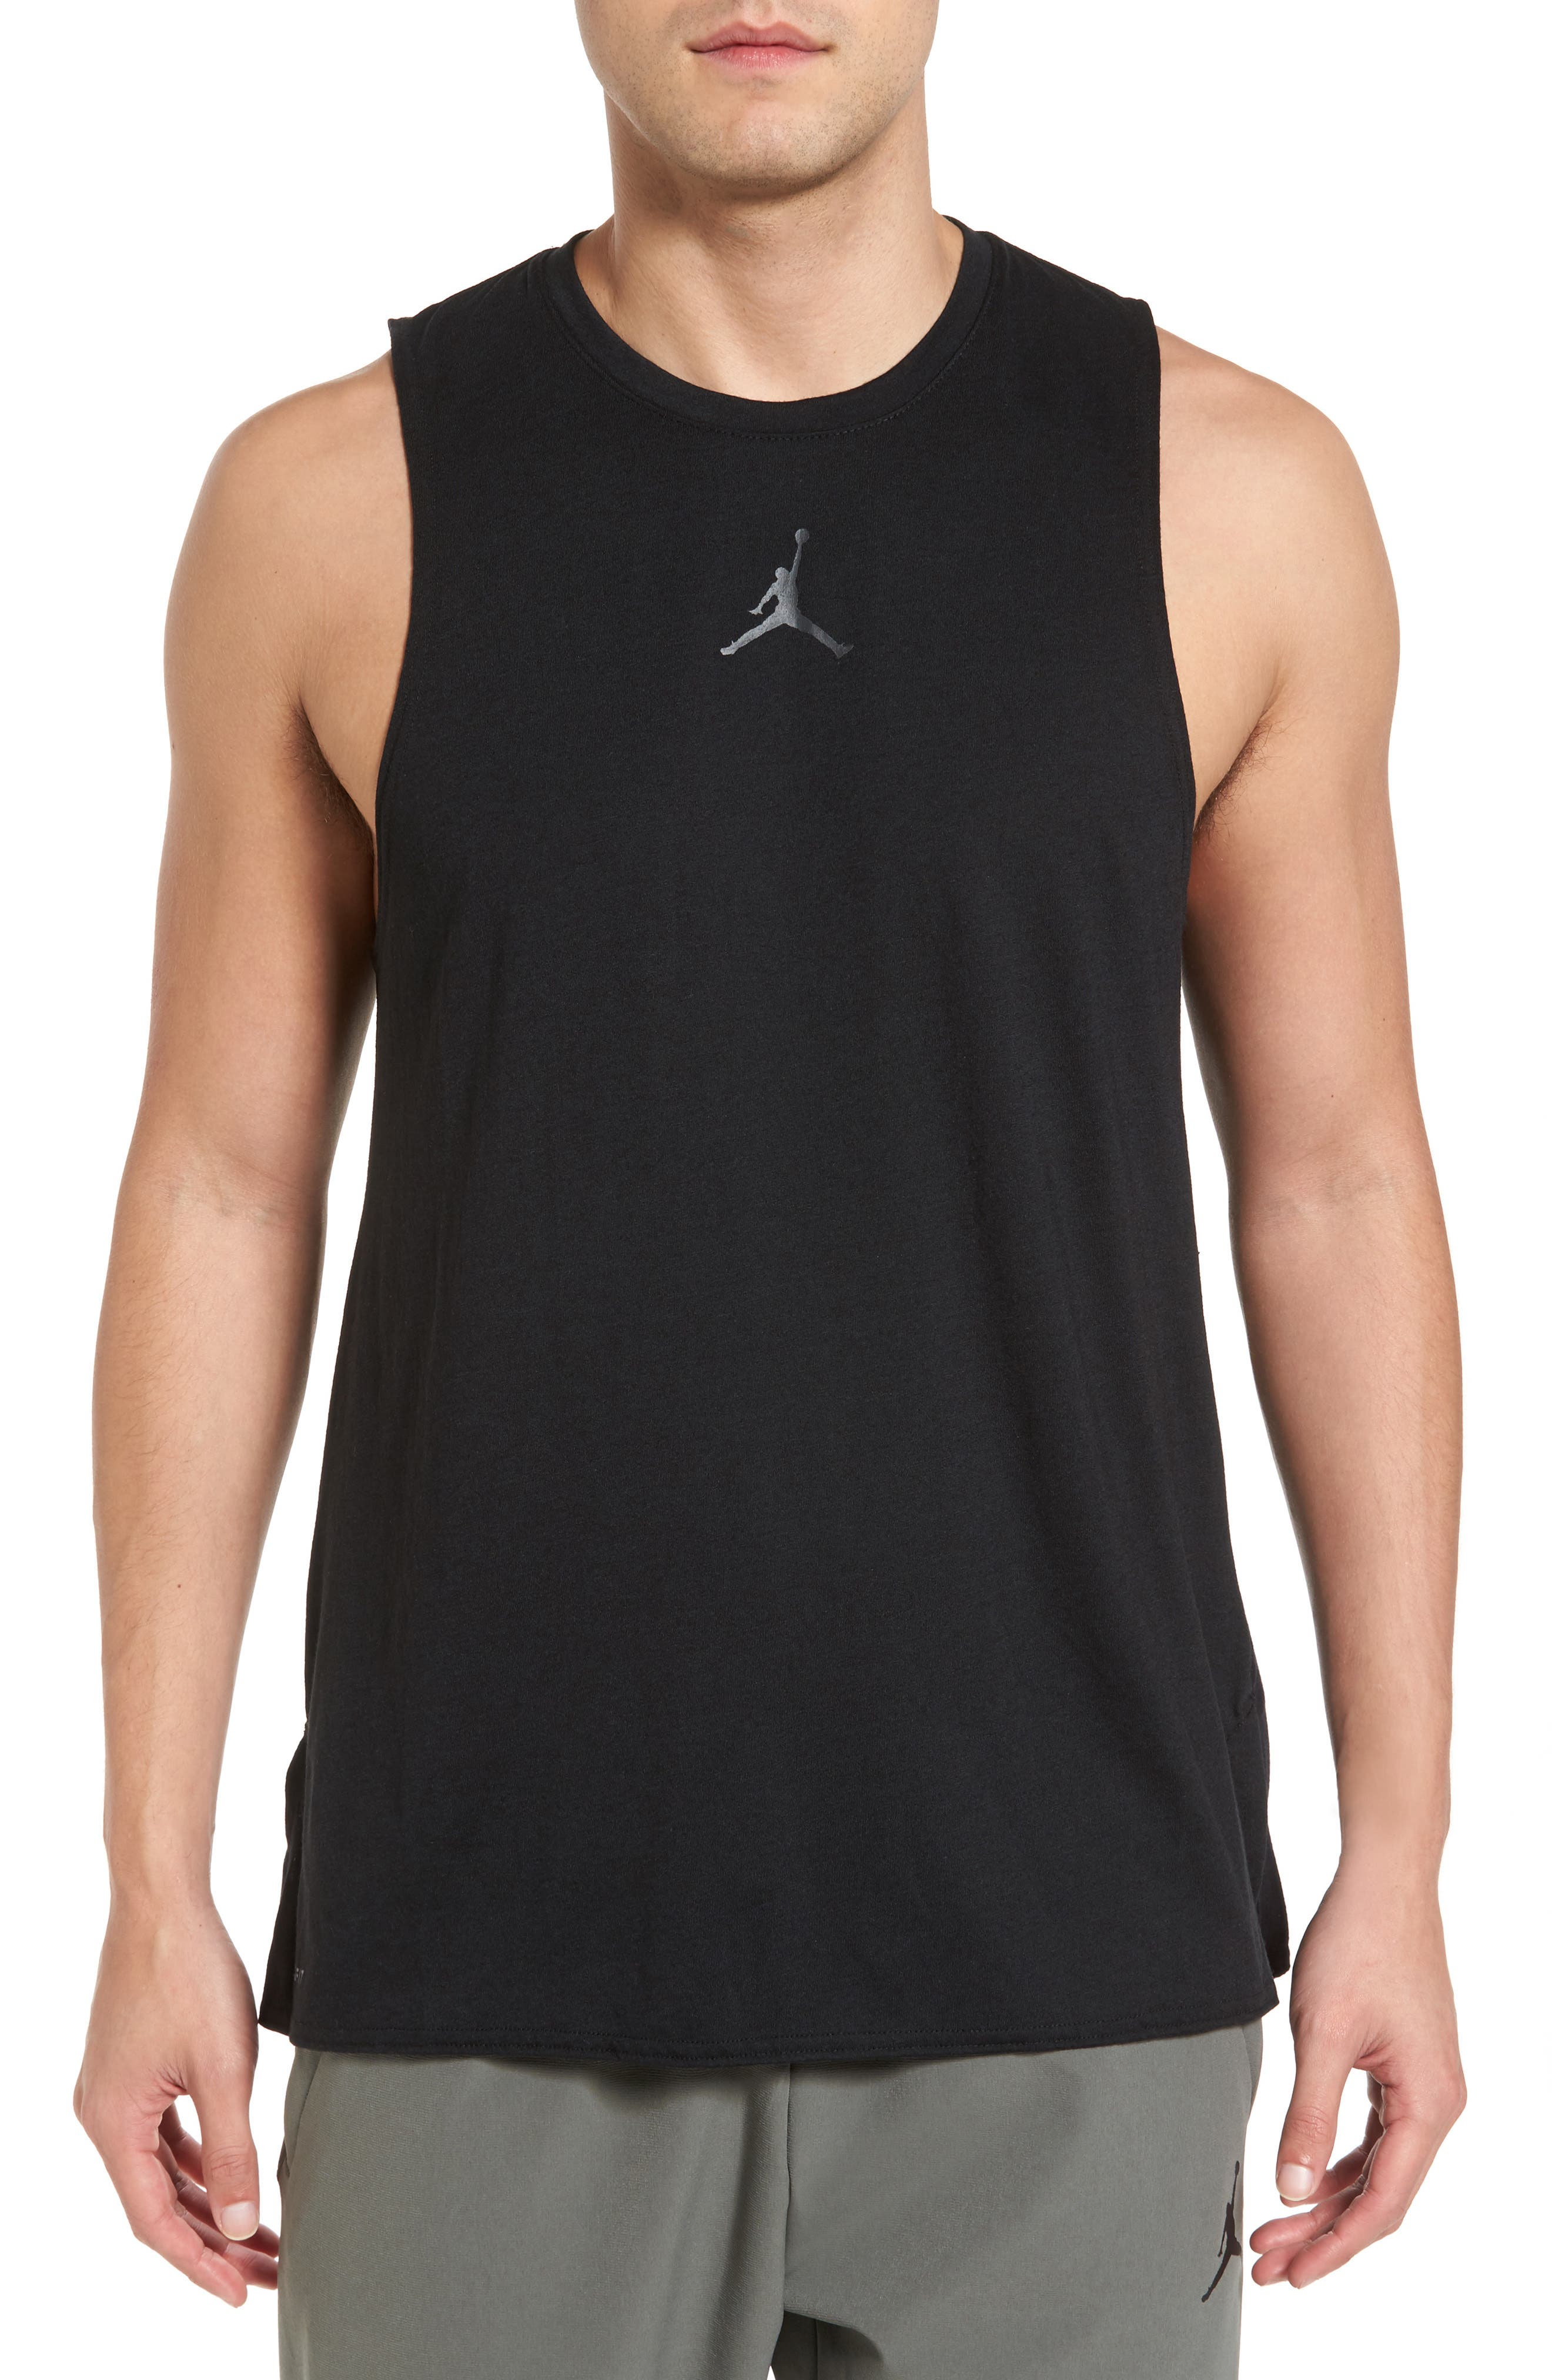 23 Tech Tank,                         Main,                         color, Black/ Anthracite